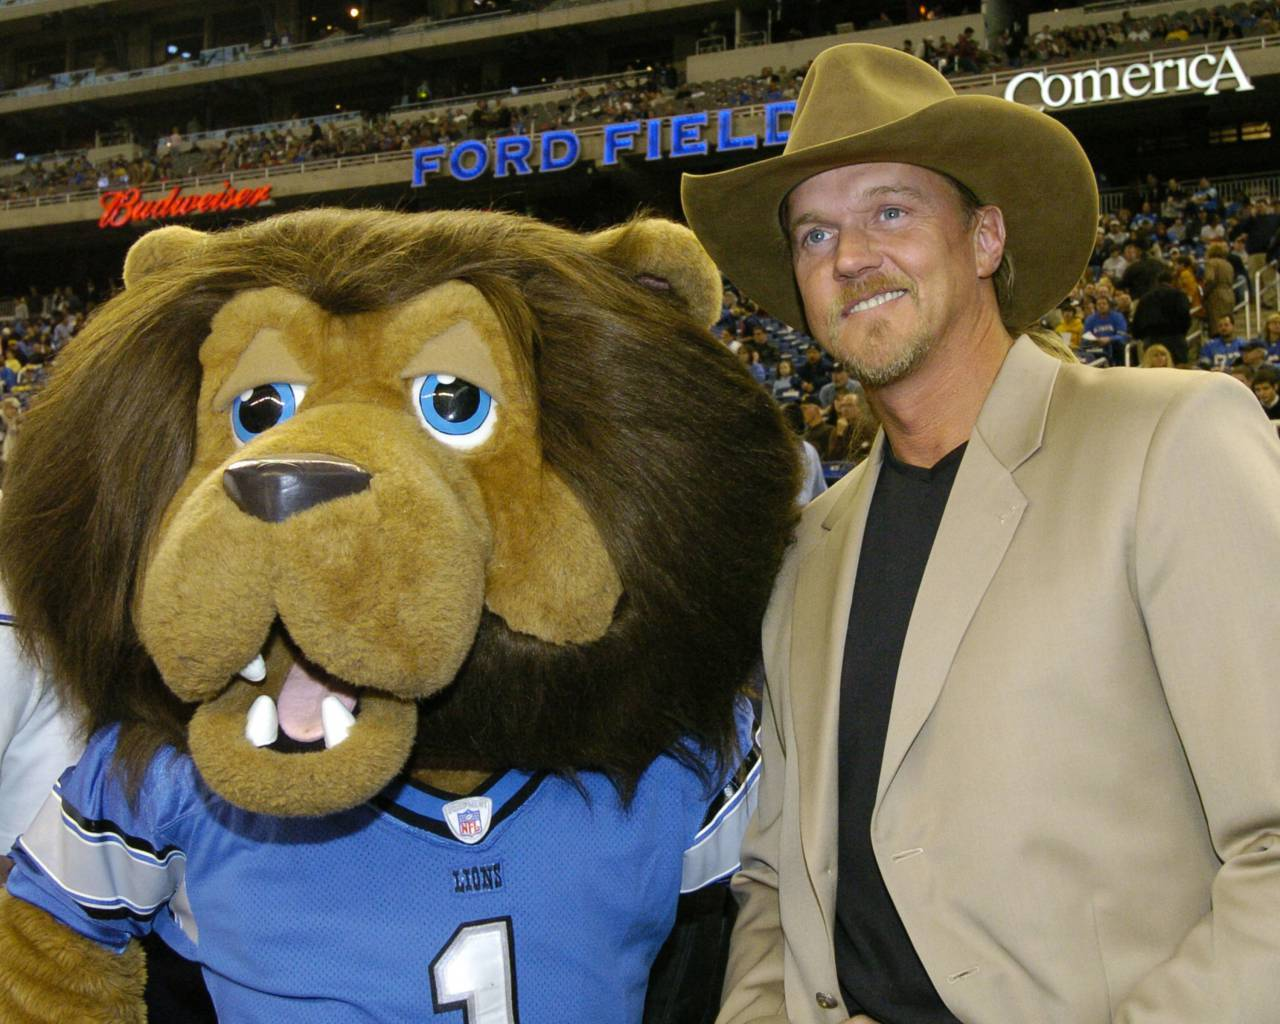 Trace Adkins poses the Detroit Lions mascot before sining the national anthem at a Thanksgiving Day game, November 25, 2005, in Detroit. (Photo by Al Messerschmidt/Getty Images)